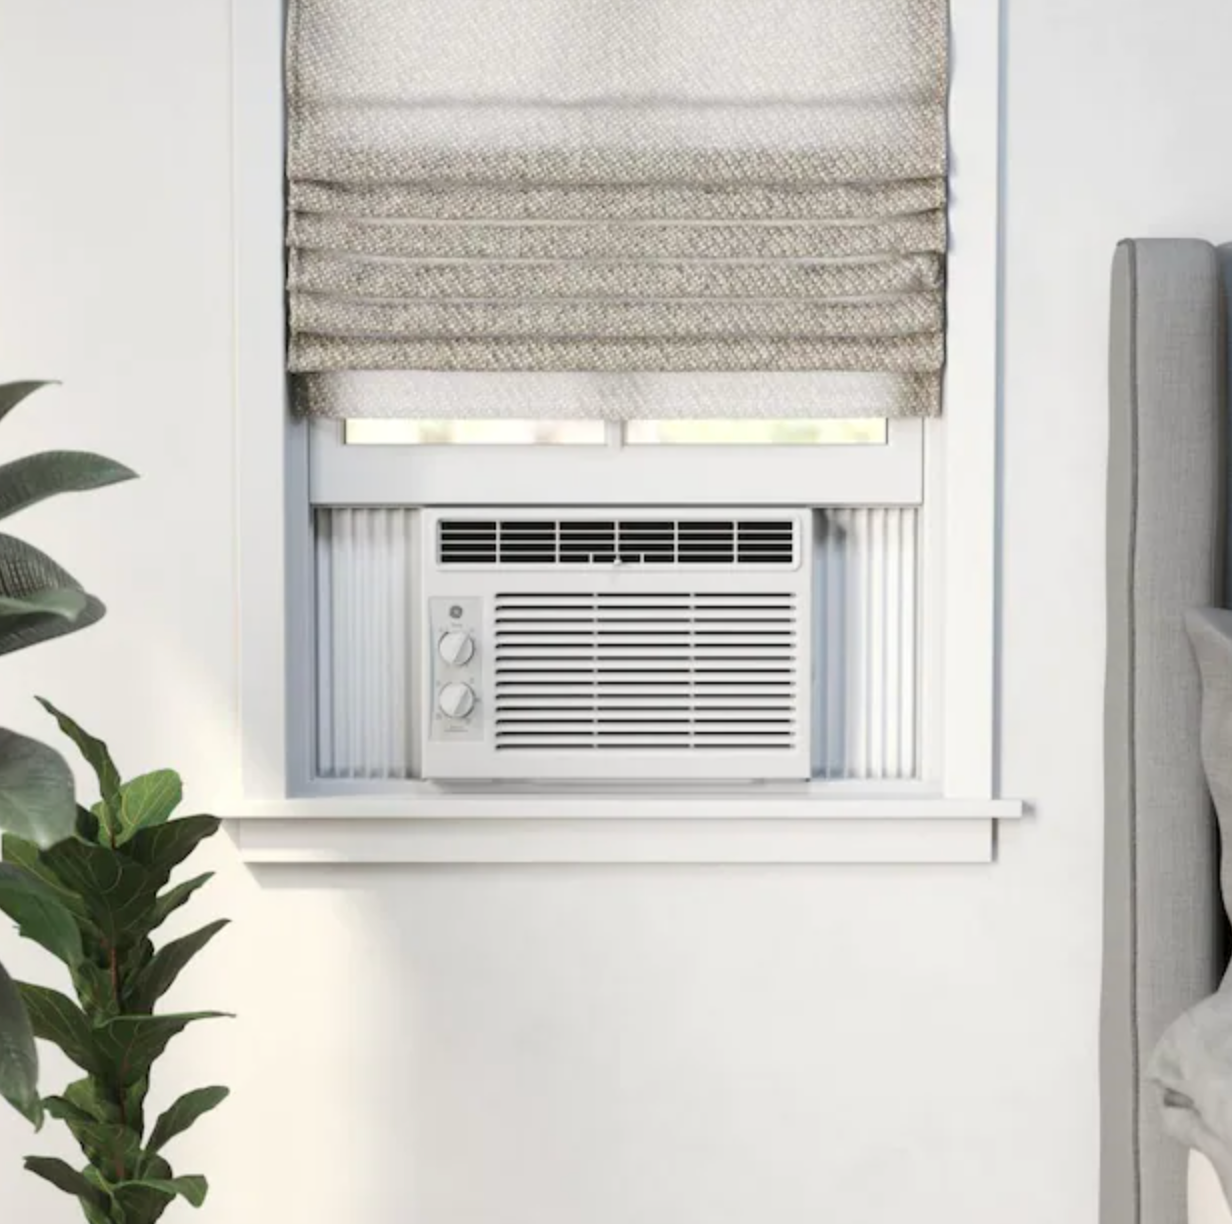 photo of the window A/C in a bedroom window